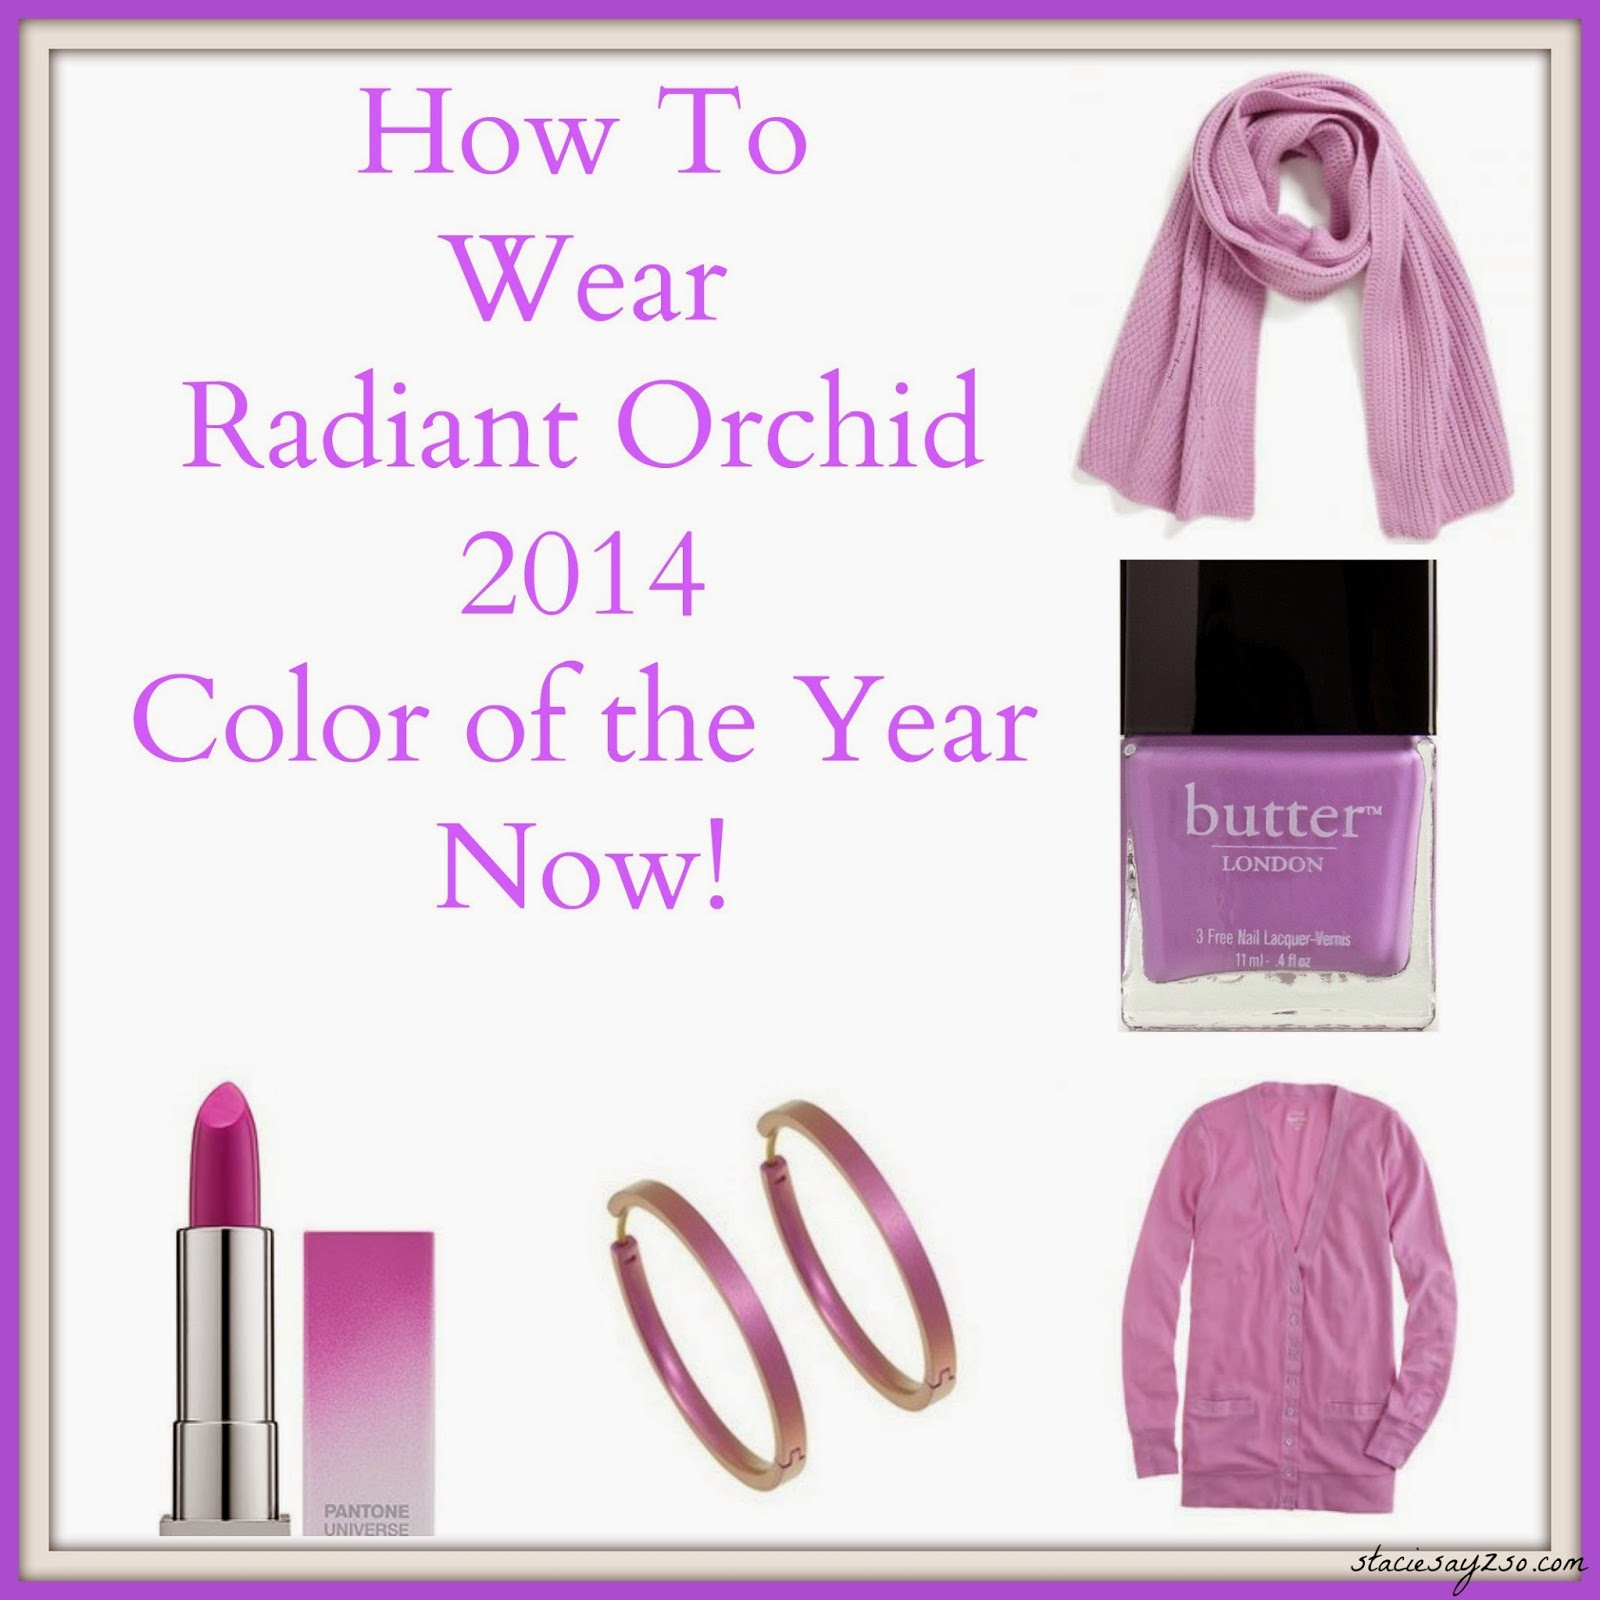 How To Wear Radiant Orchid (Color of the Year) Now ...